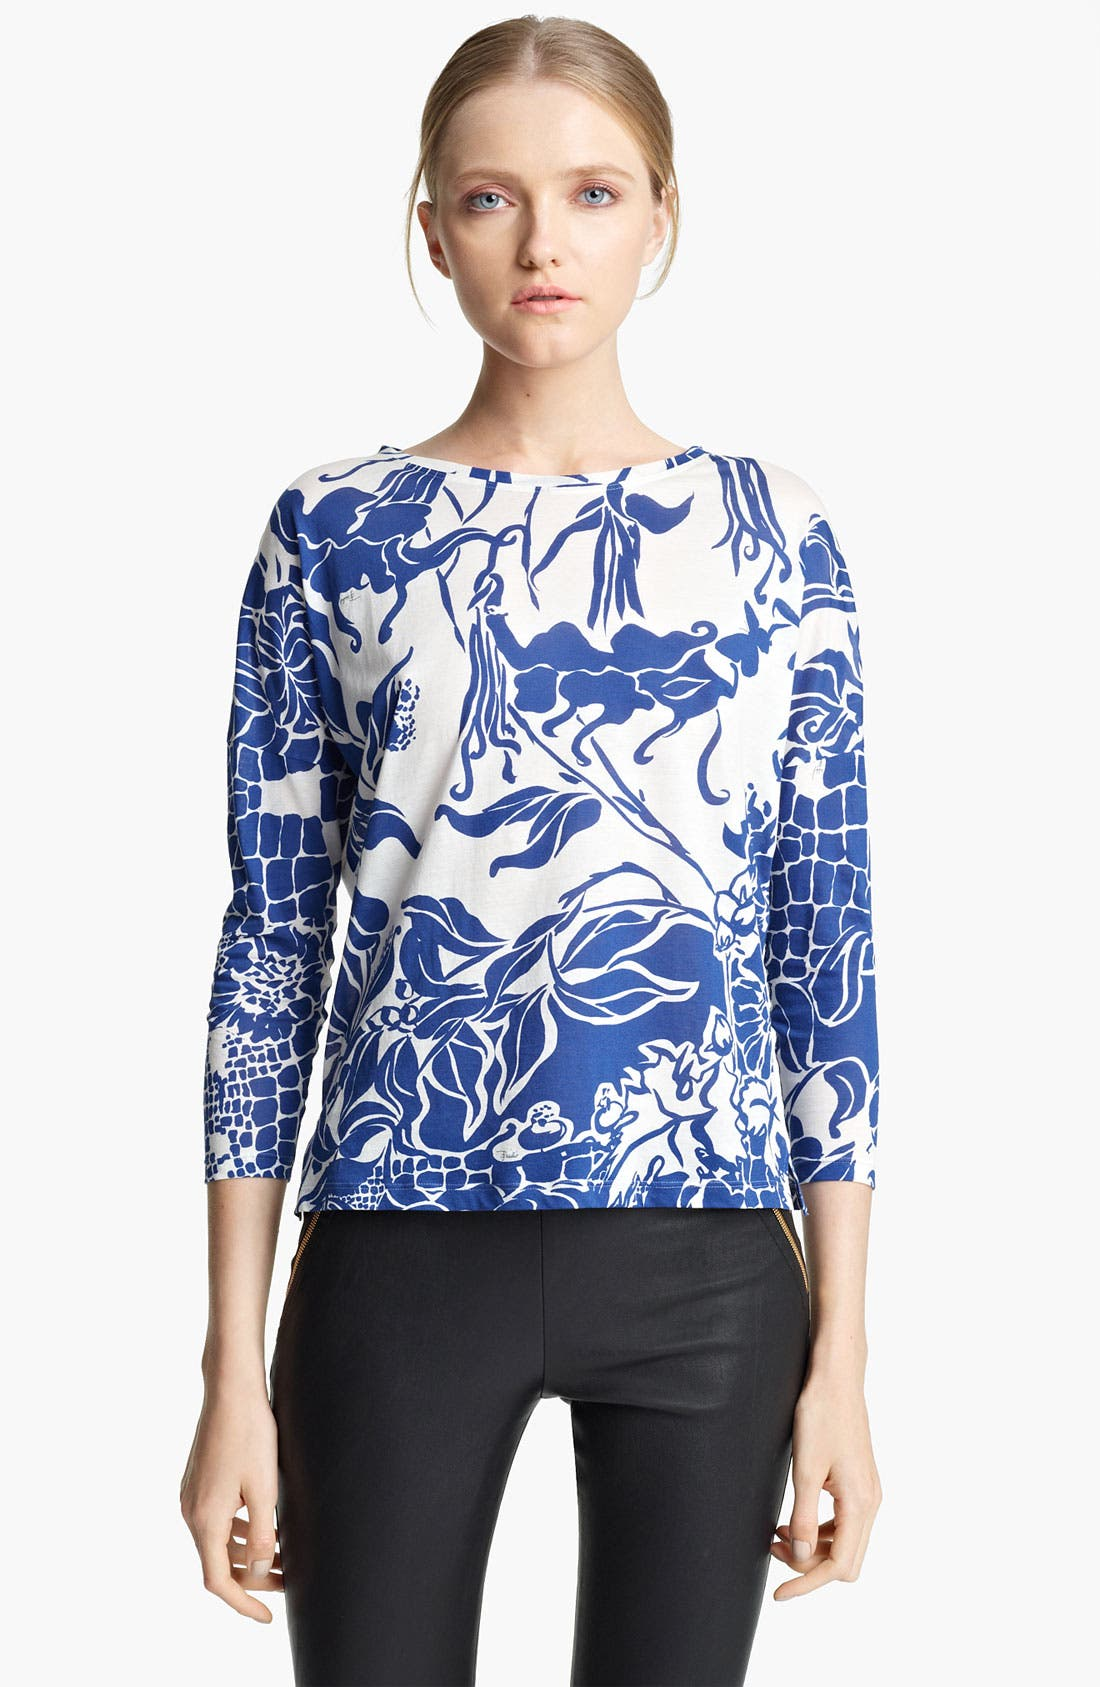 Alternate Image 1 Selected - Emilio Pucci Print Jersey Top